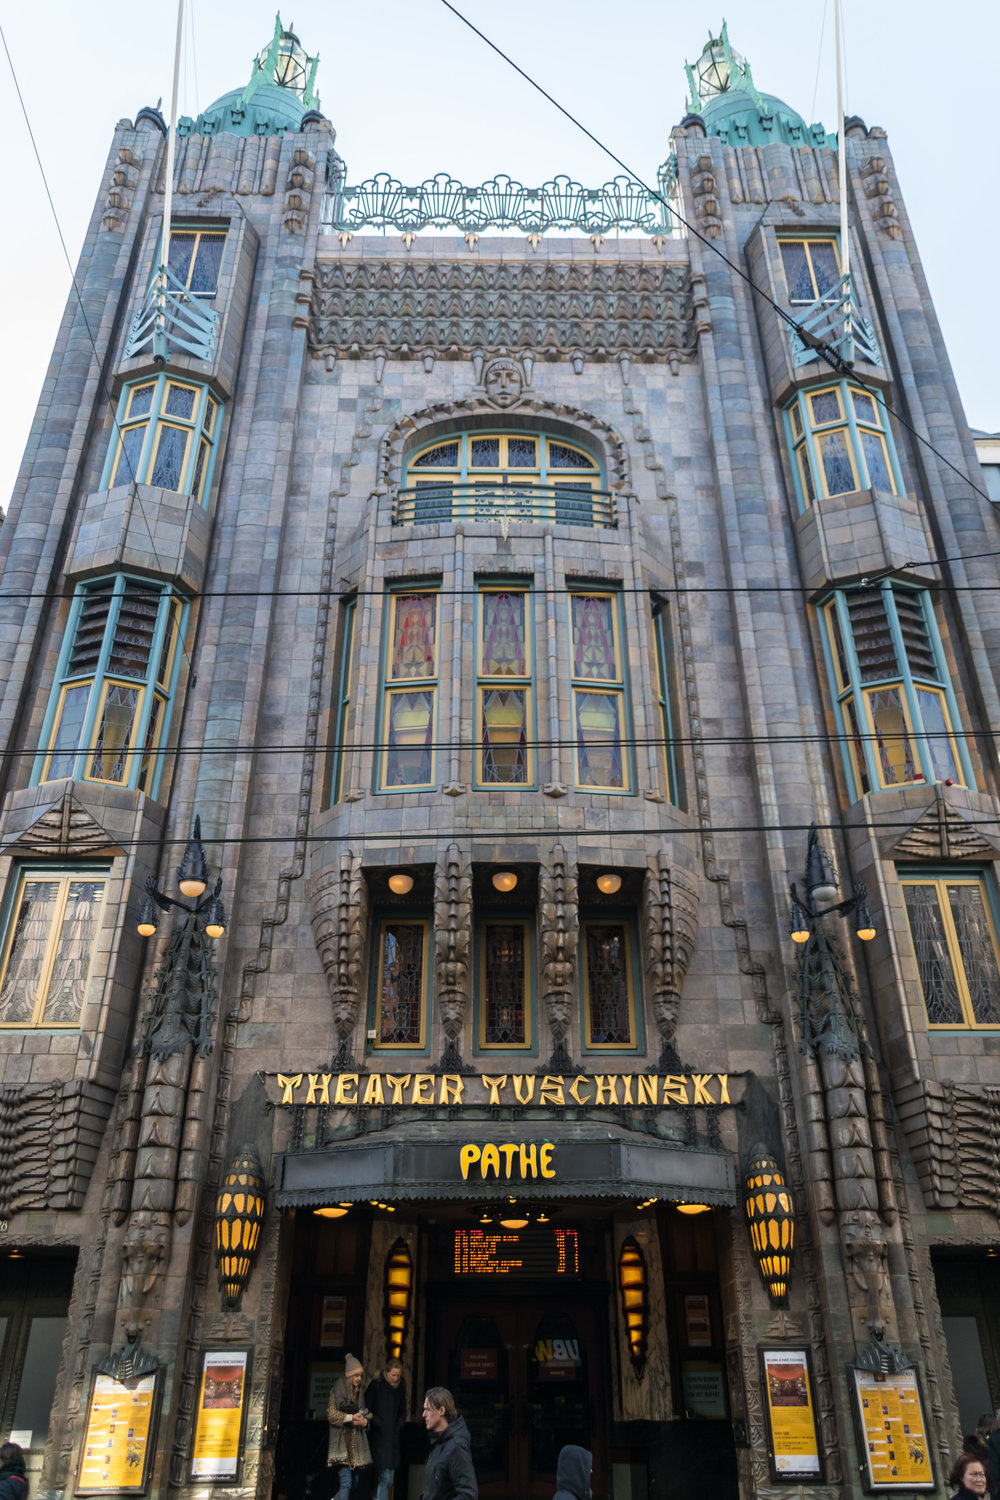 the 1921 Pathé Tuschinski movie theater